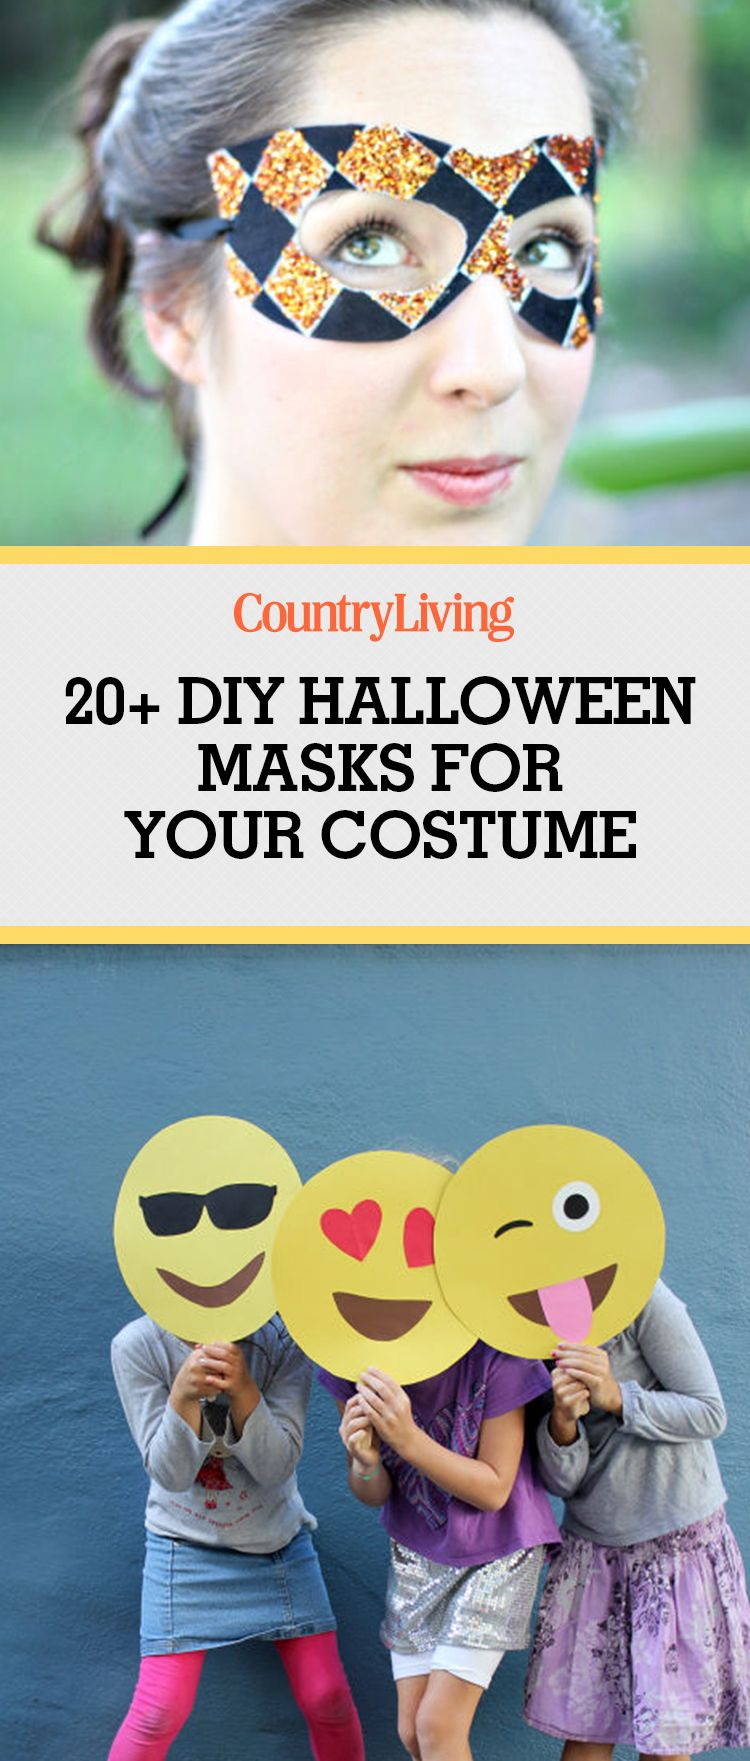 How to Make Halloween Masks How to Make Halloween Masks new pics